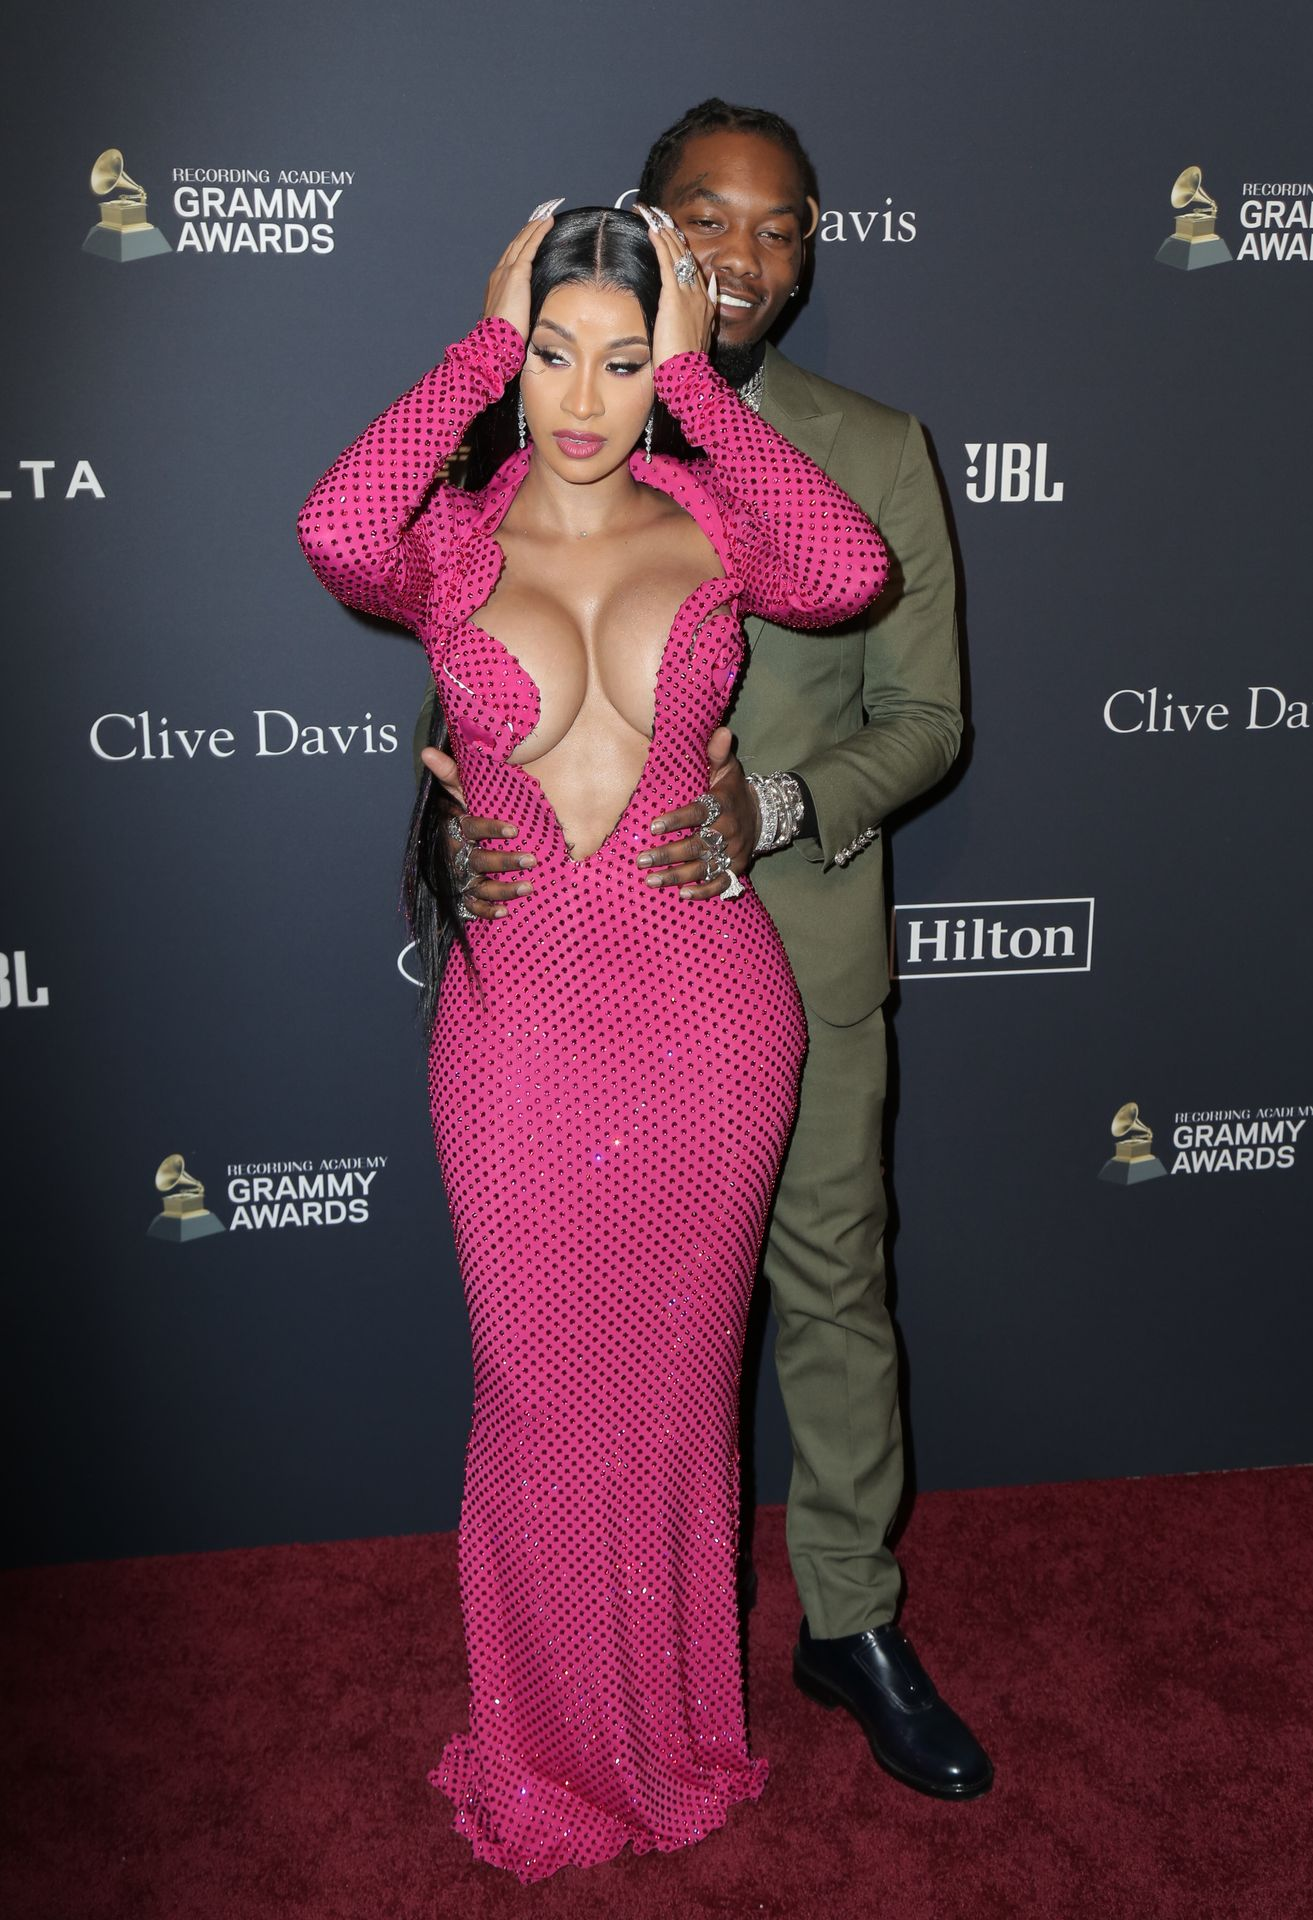 Offset Covers Cardi B's Boobs To Avoid Wardrobe Malfunction At Clive Davis Pre Grammy Party 0072